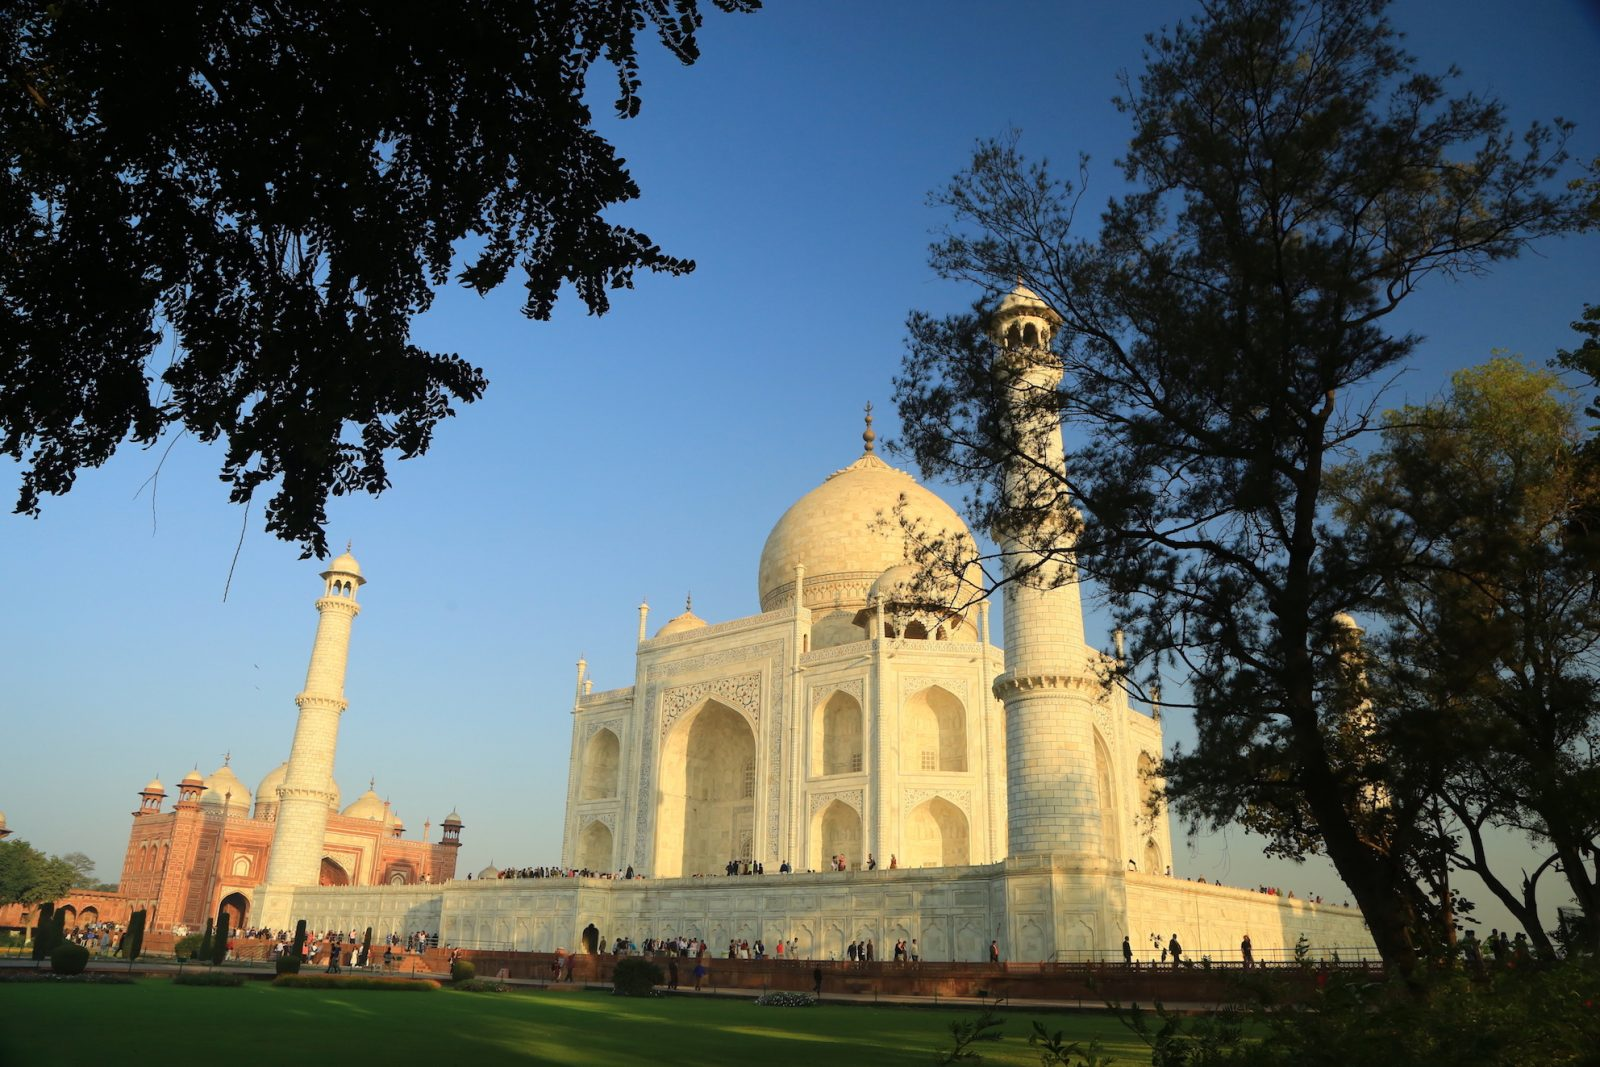 Discover the magic of India<br>Sightseeing with soul tour. Oct 21 – Nov 6, 2020